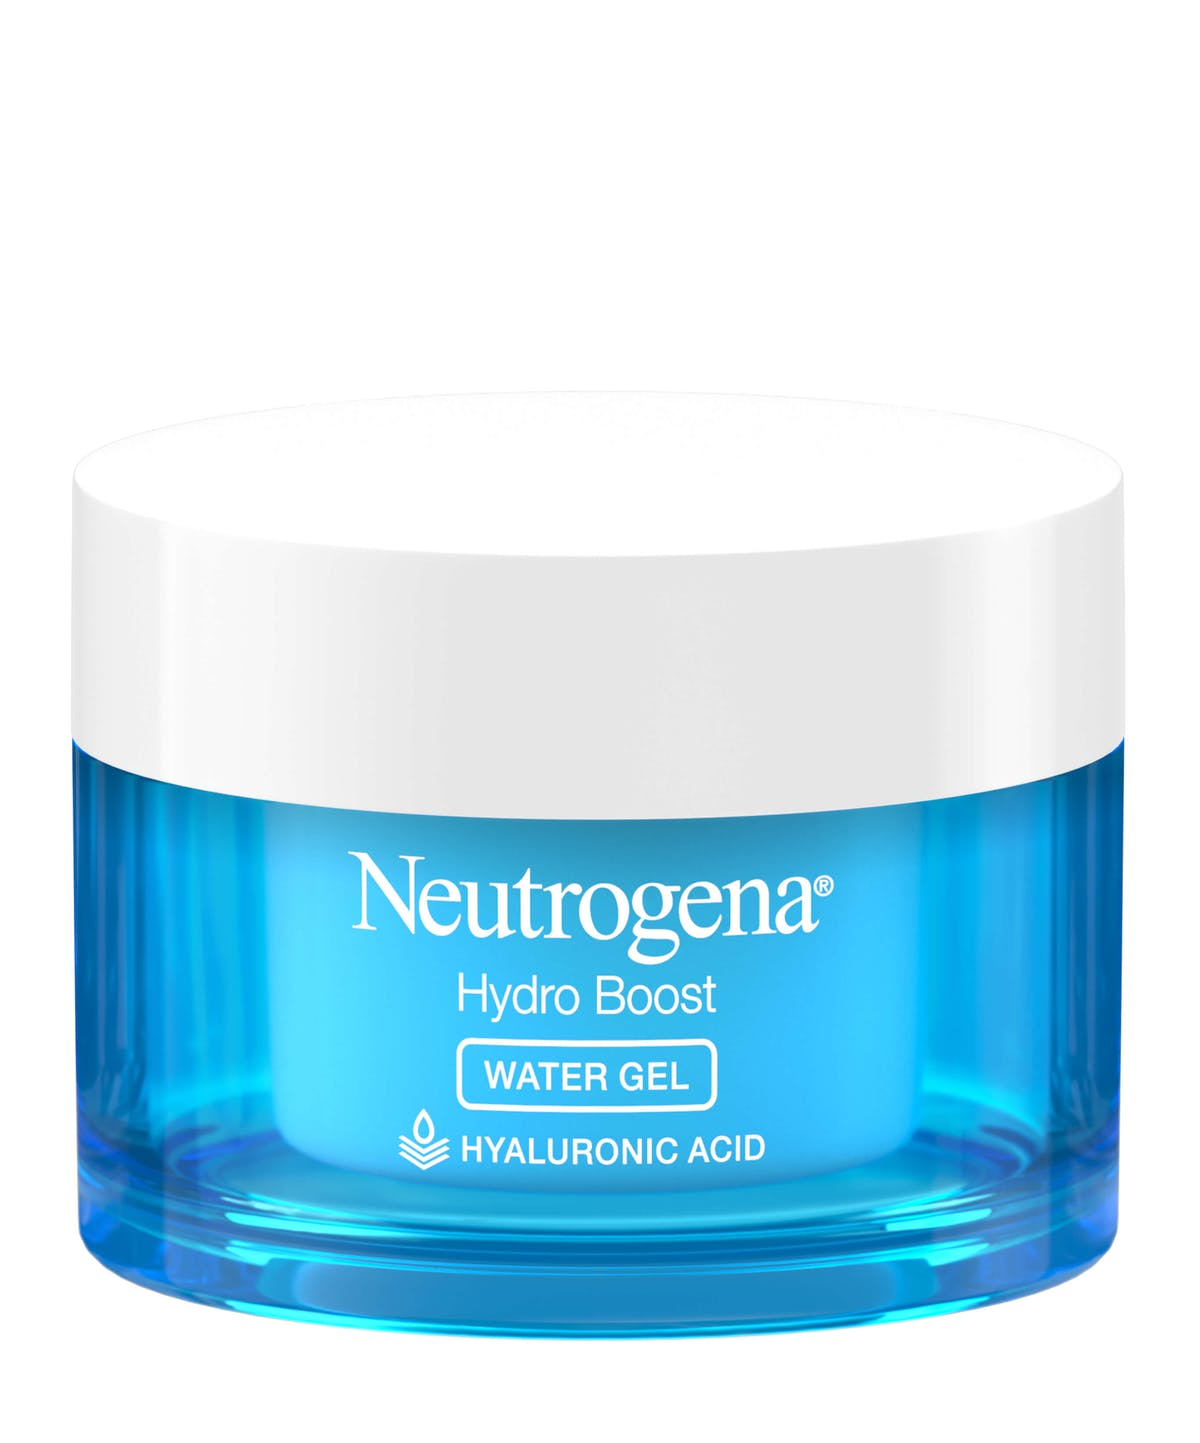 Hydro Boost Water Gel Oil Free Face Moisturizer Neutrogena